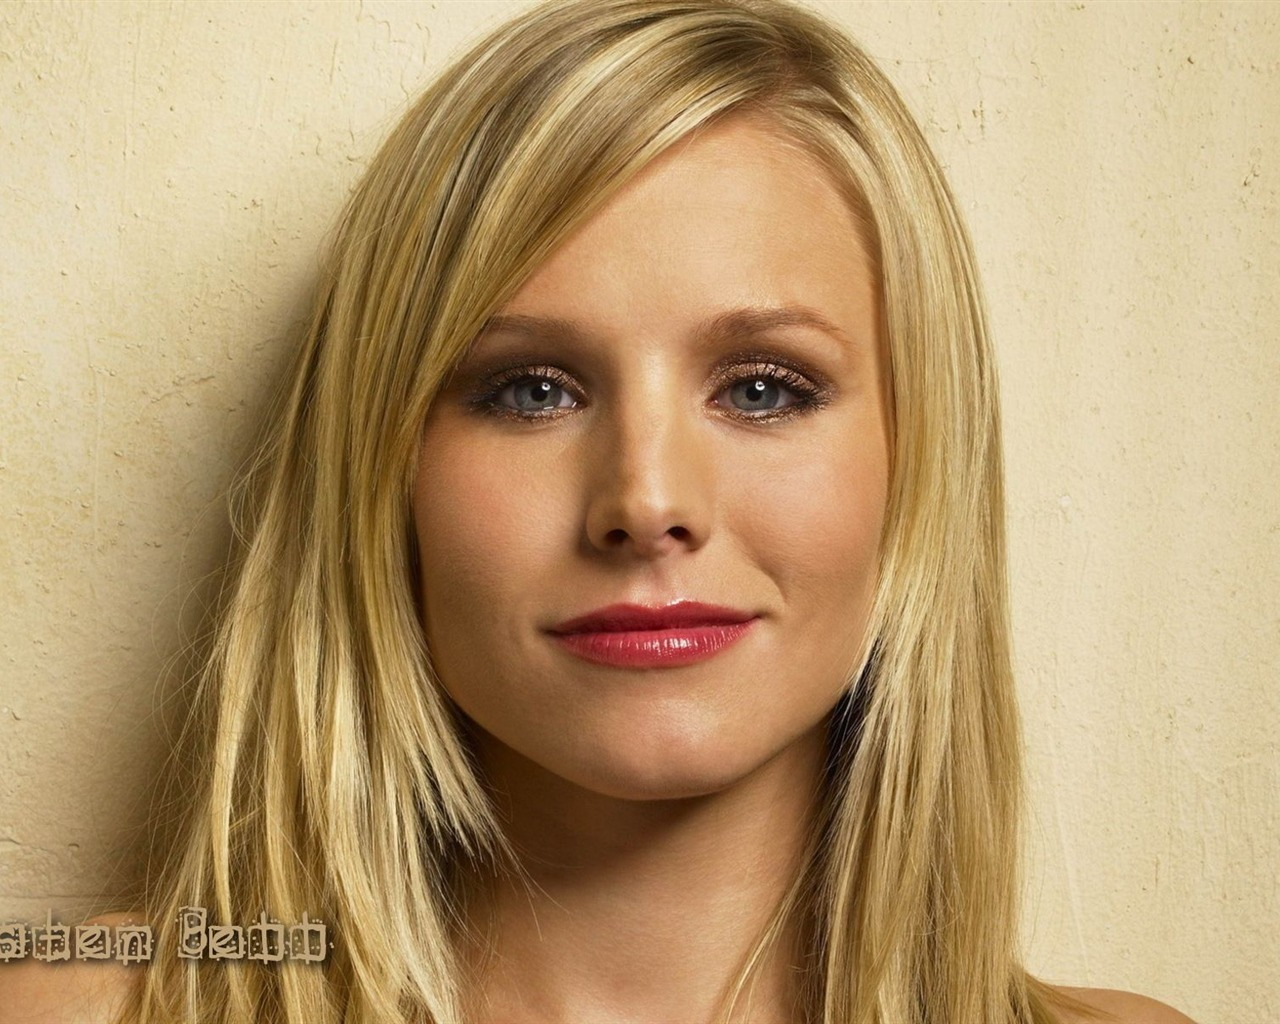 Kristen Bell #034 - 1280x1024 Wallpapers Pictures Photos Images